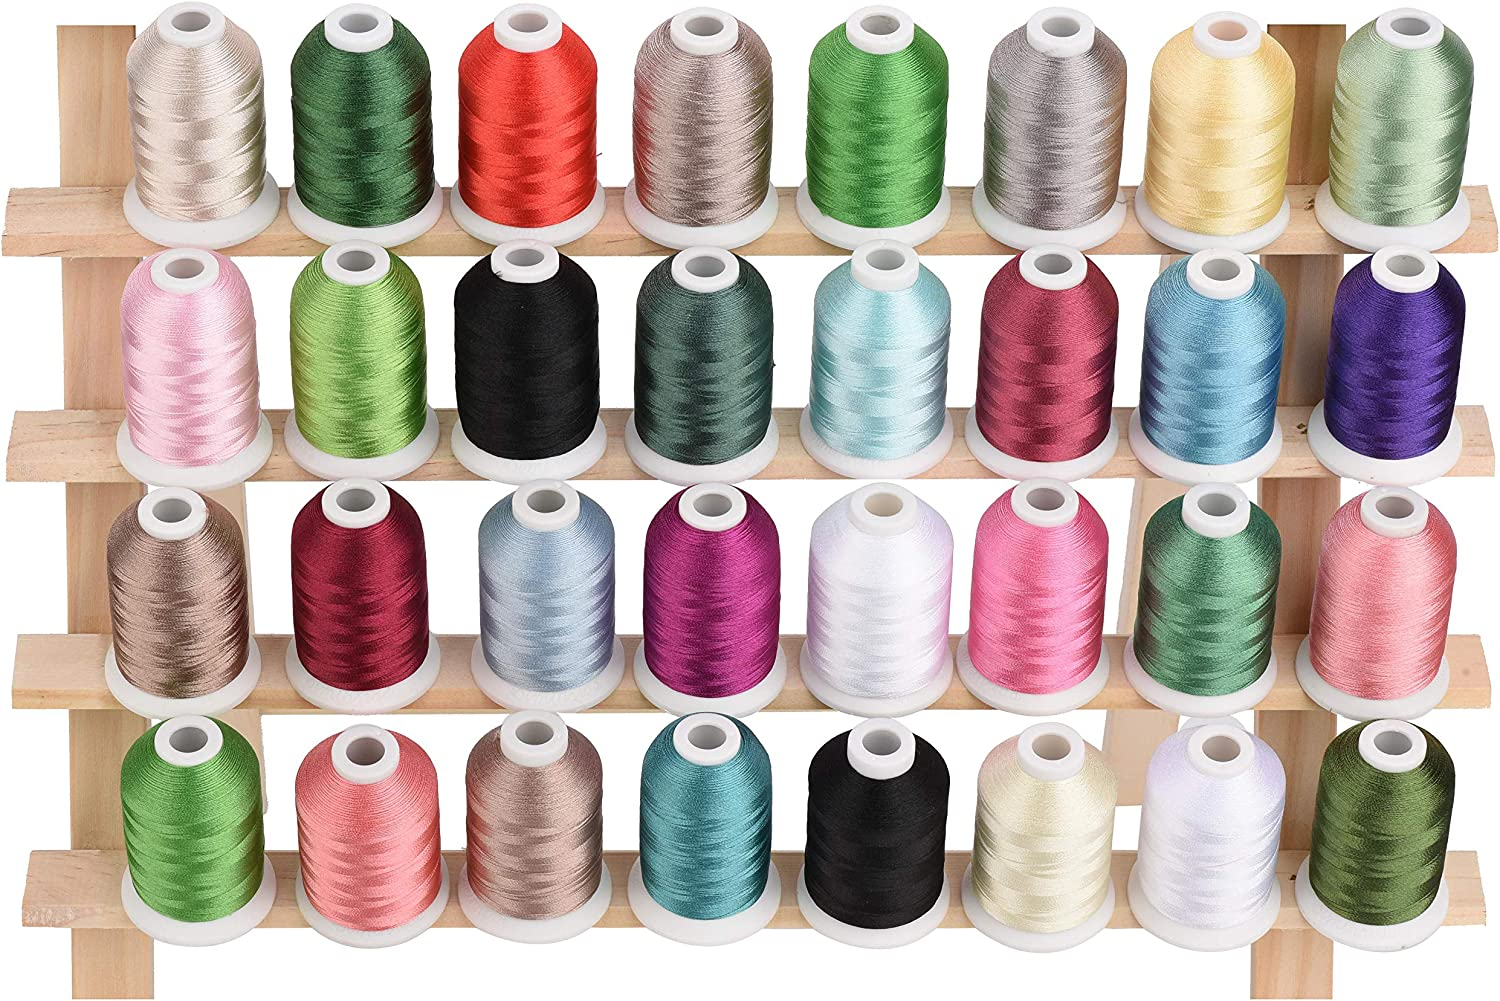 Simthread New 30 Color Packs Polyester Embroidery Machine Thread Kit 500M Essential Color 2 Each Spool 550Y